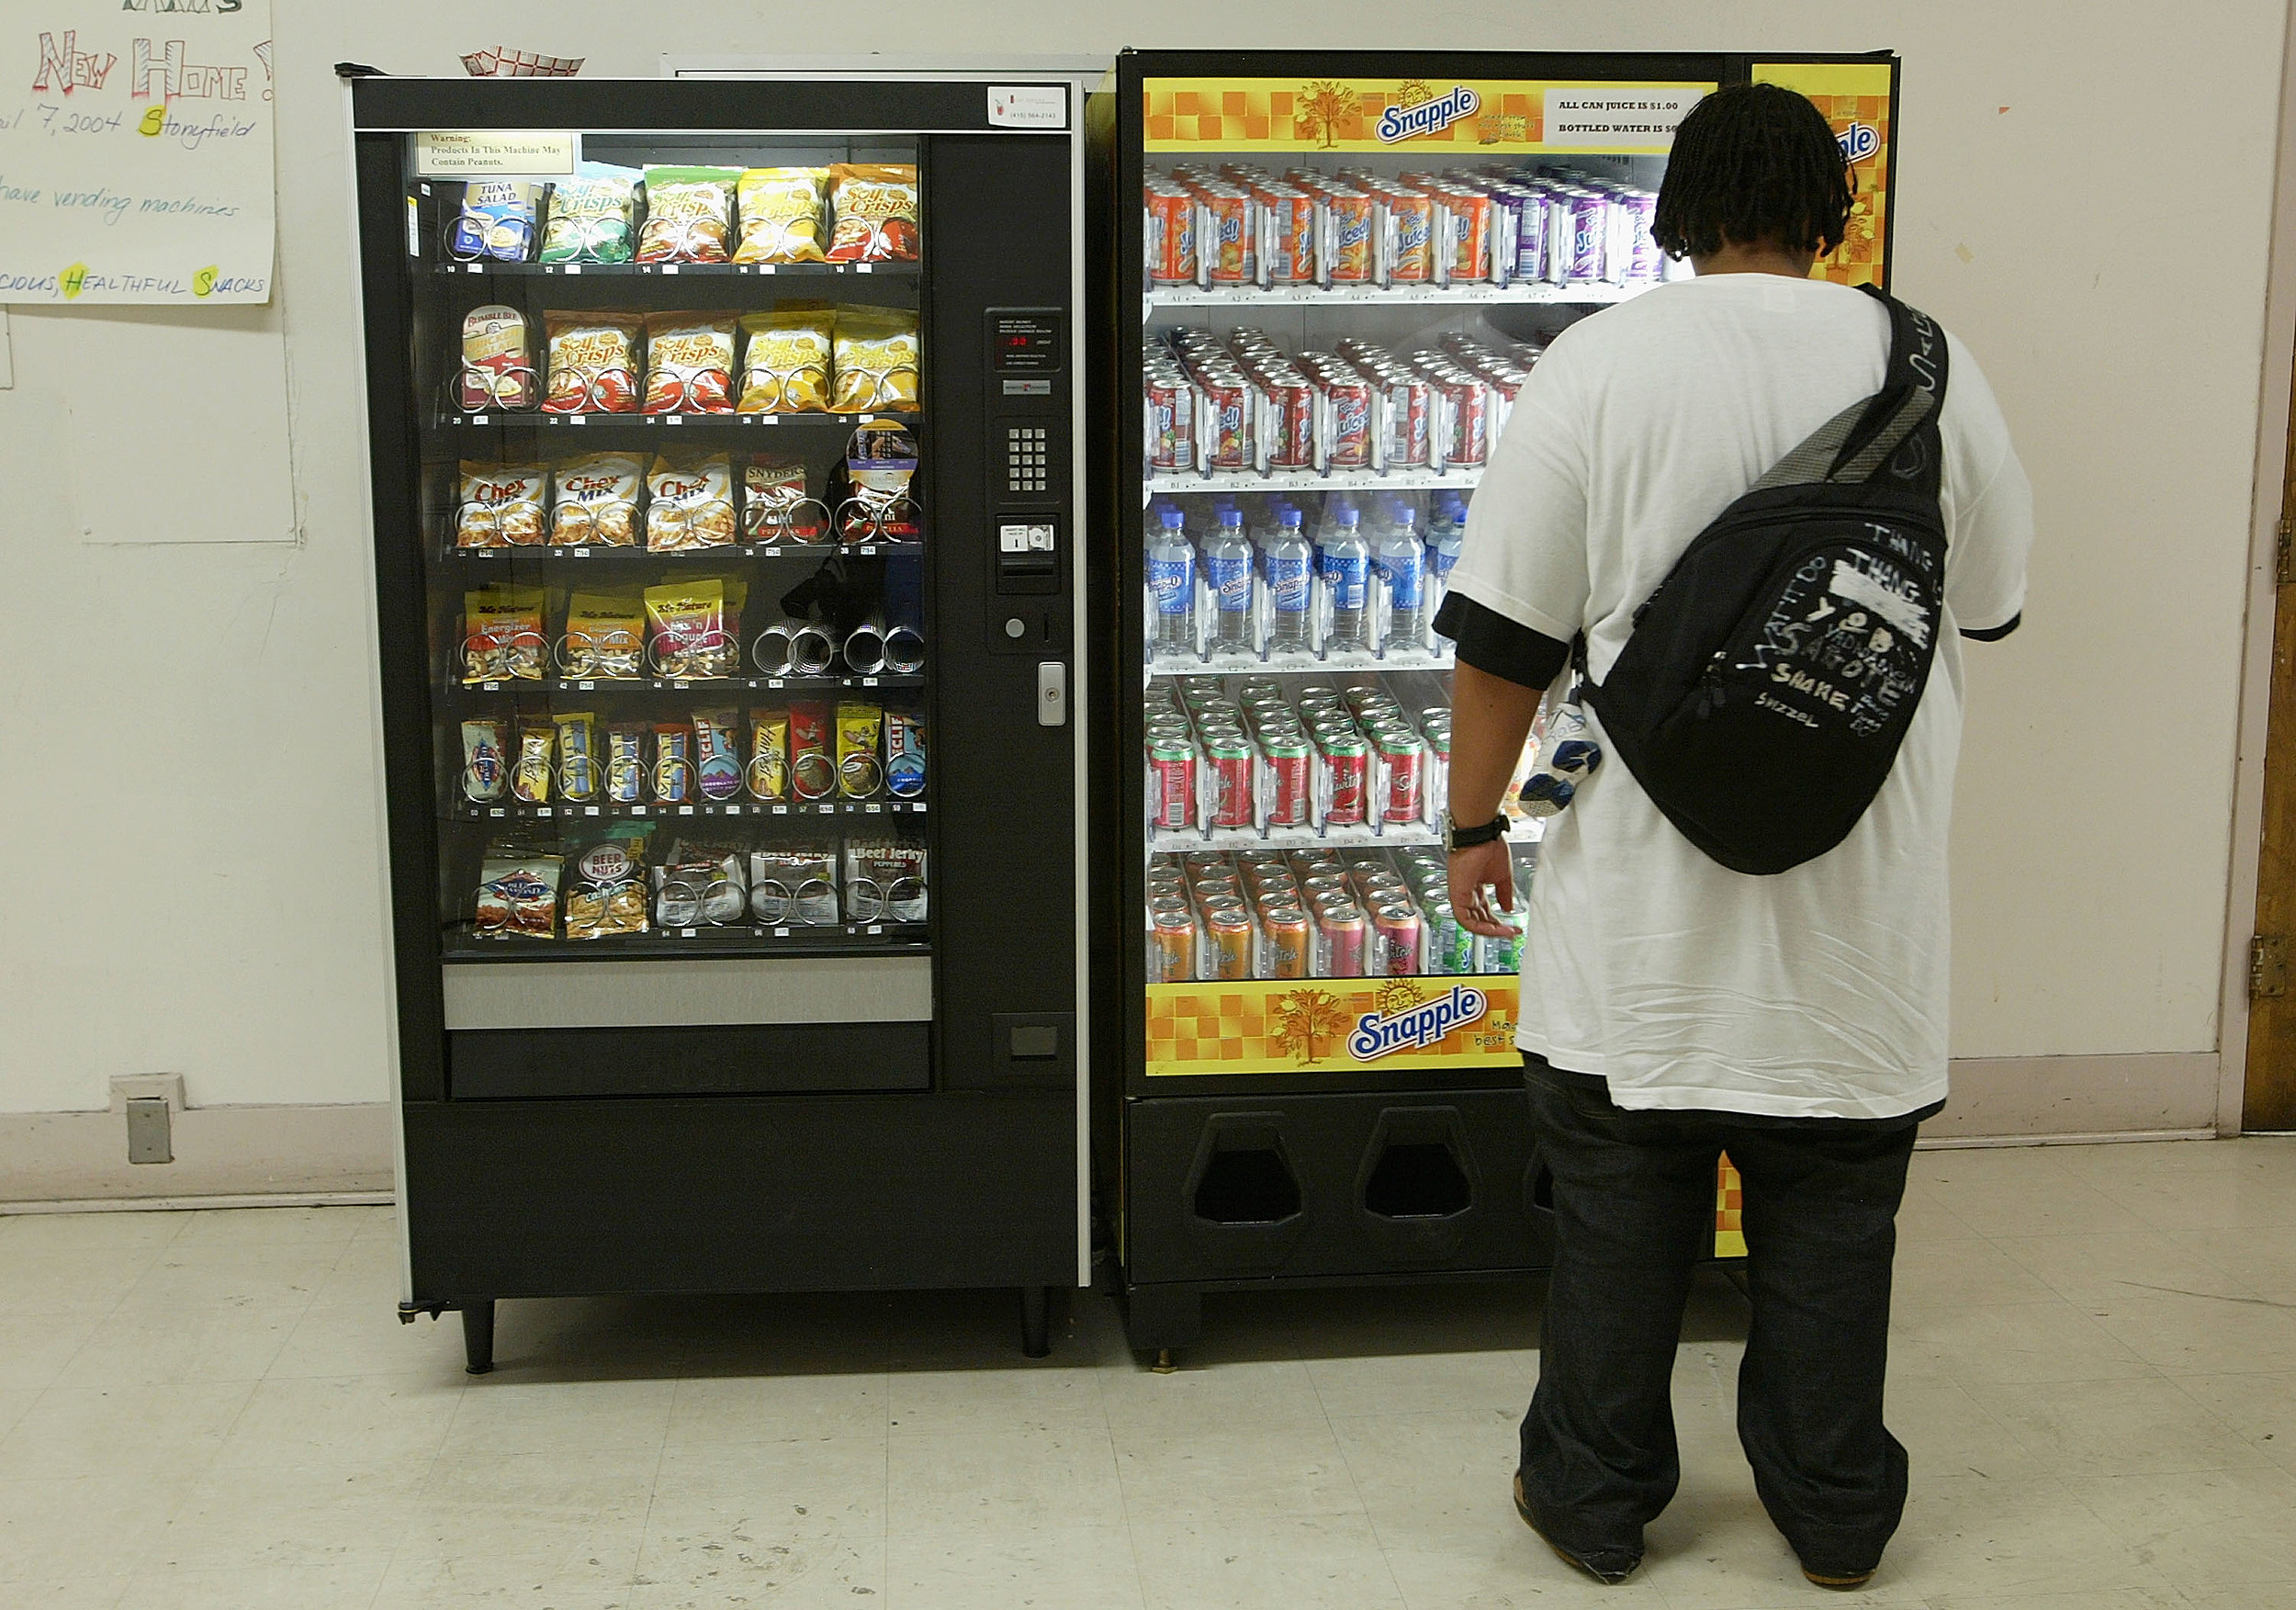 Health Food Vending Machines Are Placed In San Francisco Schools